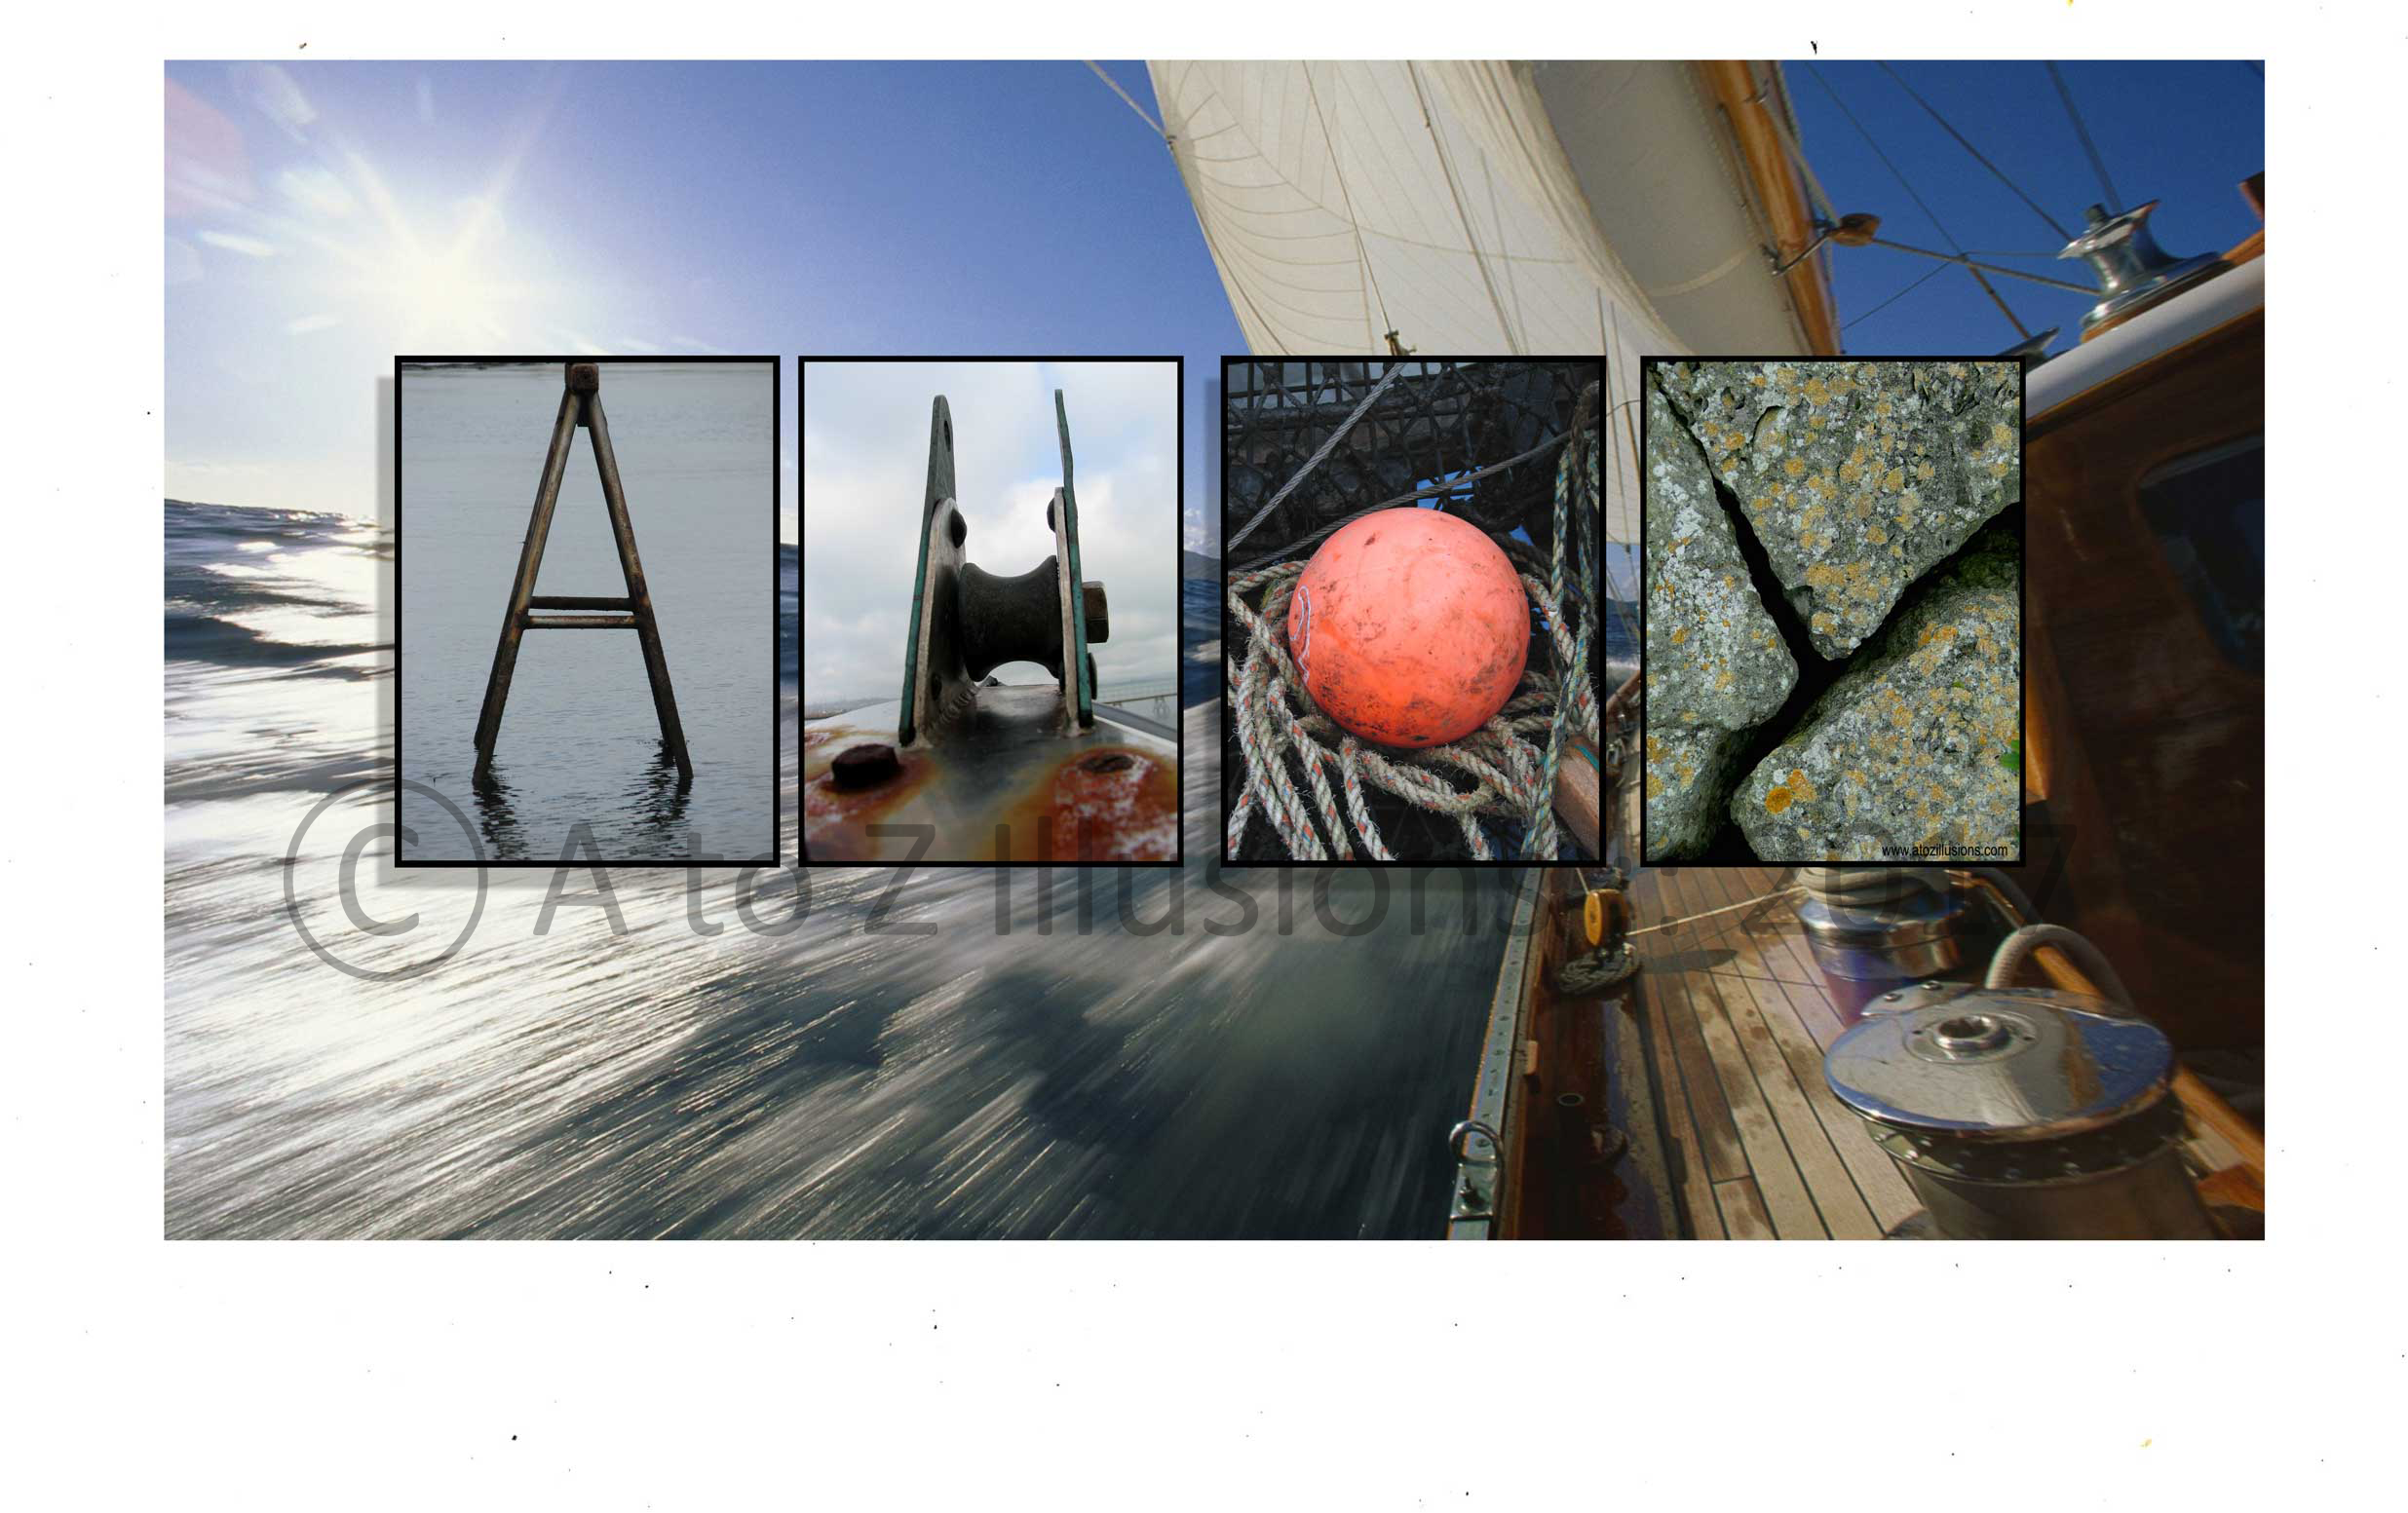 Canvas Prints: AHOY!